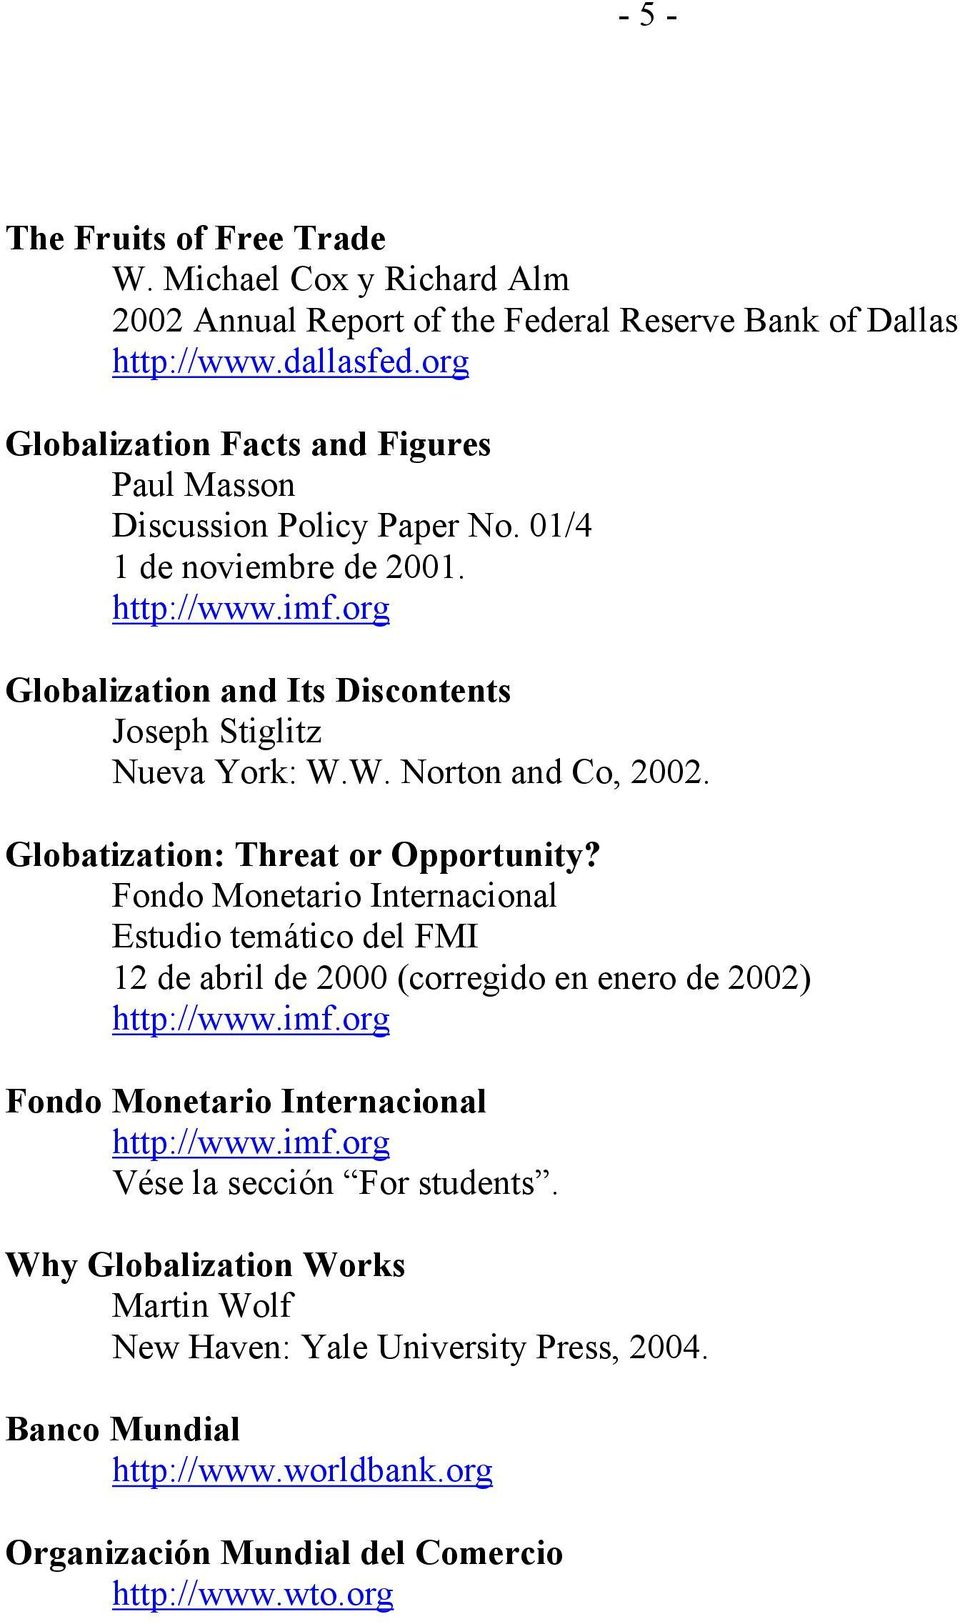 W. Norton and Co, 2002. Globatization: Threat or Opportunity? Fondo Monetario Internacional Estudio temático del FMI 12 de abril de 2000 (corregido en enero de 2002) http://www.imf.